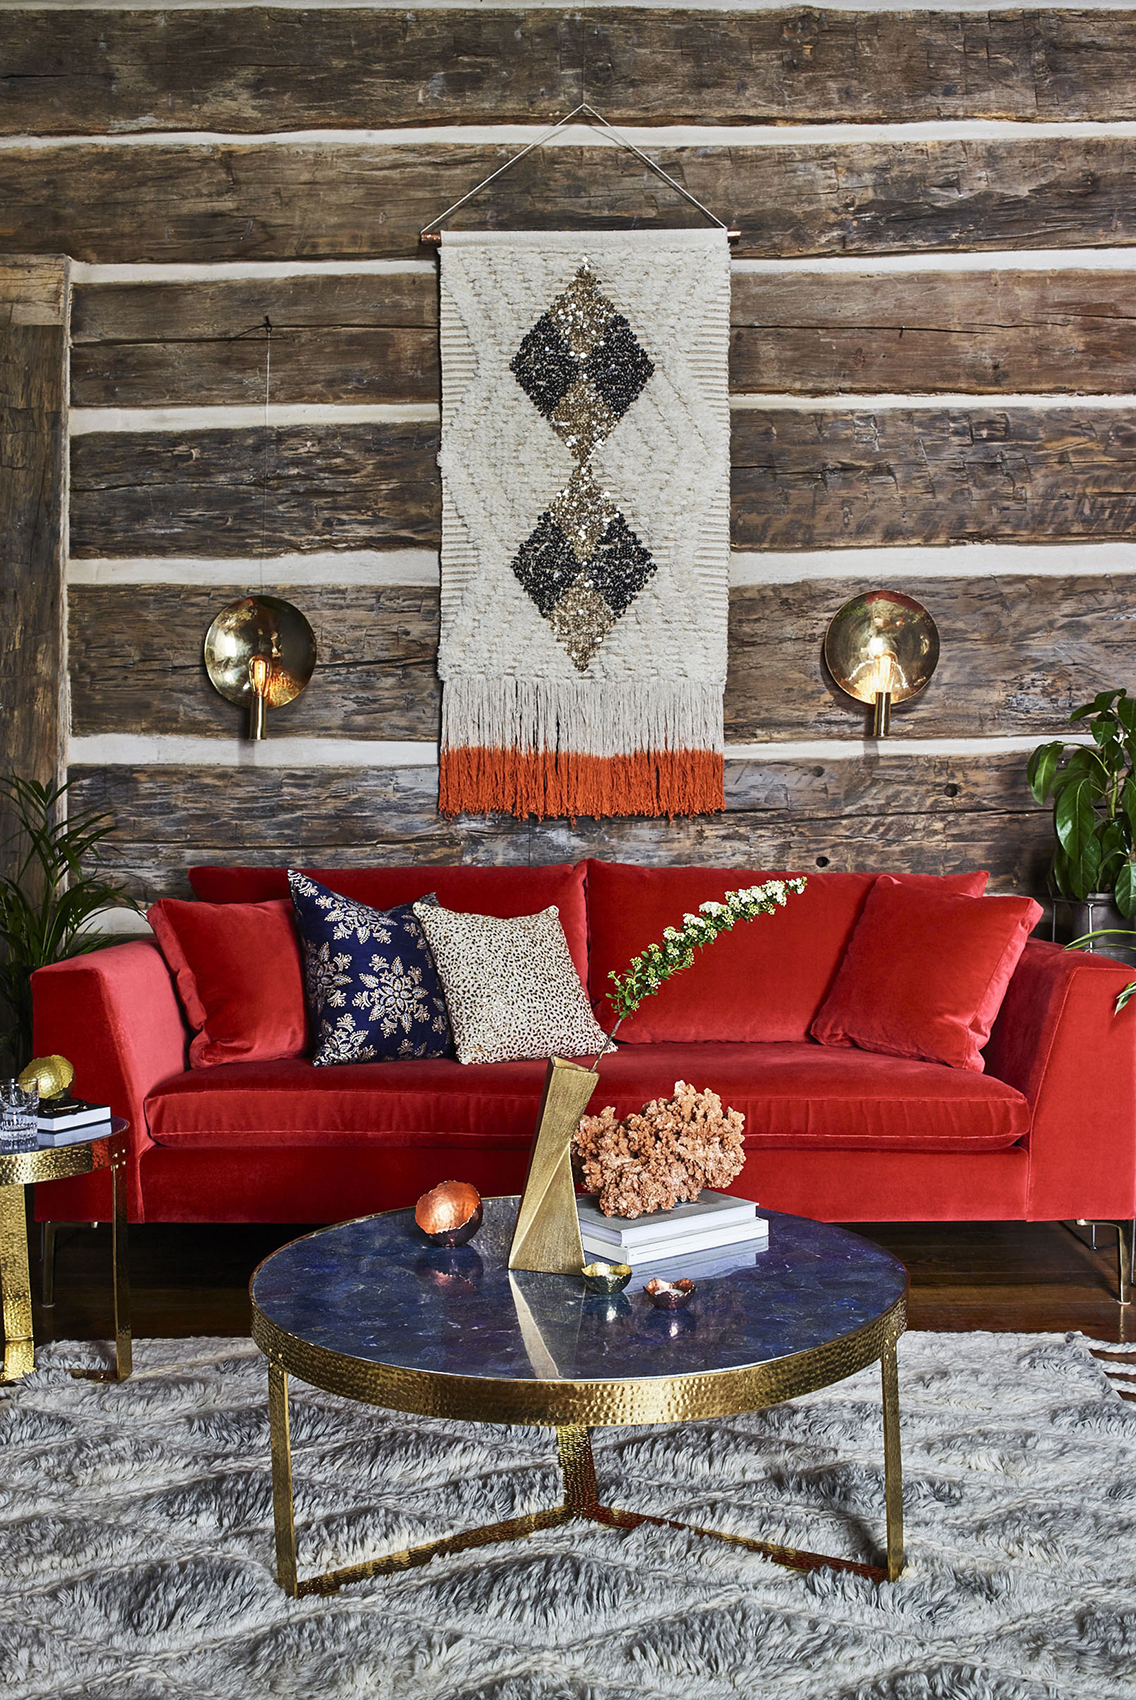 Vibrant red couch in living room